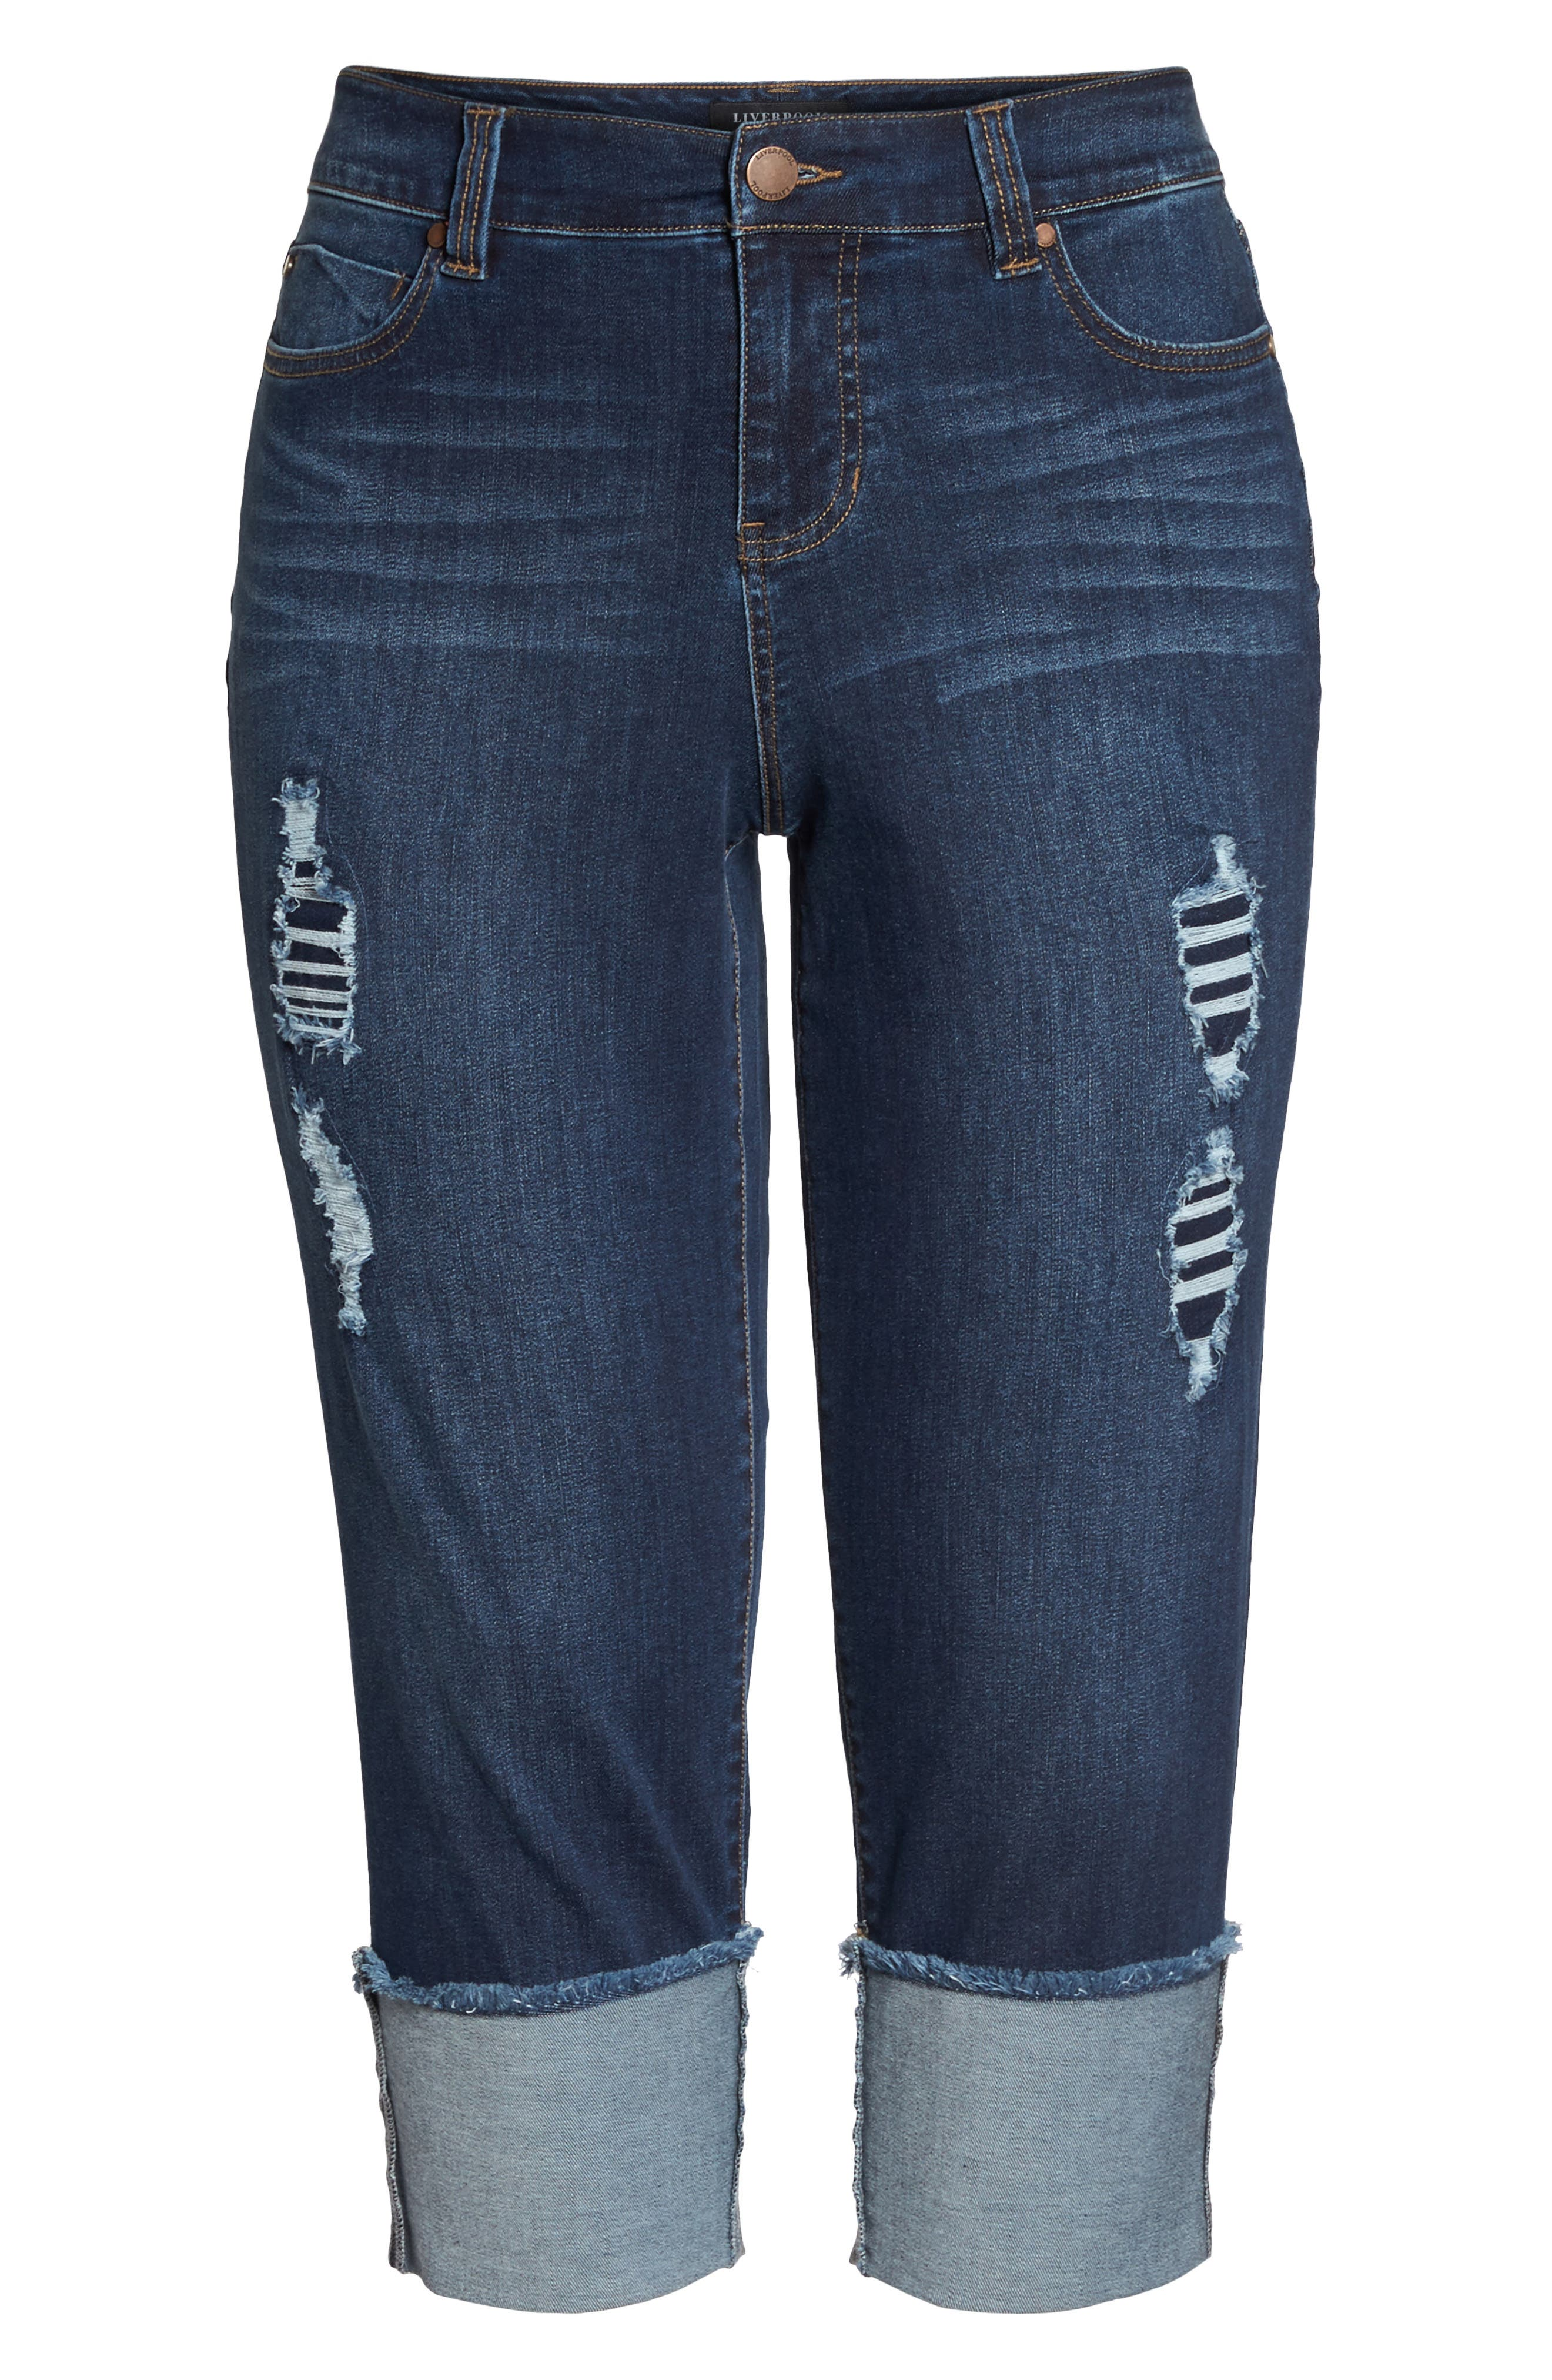 Morgan Wide Cuff Crop Jeans,                             Alternate thumbnail 7, color,                             CHAPMAN WASH